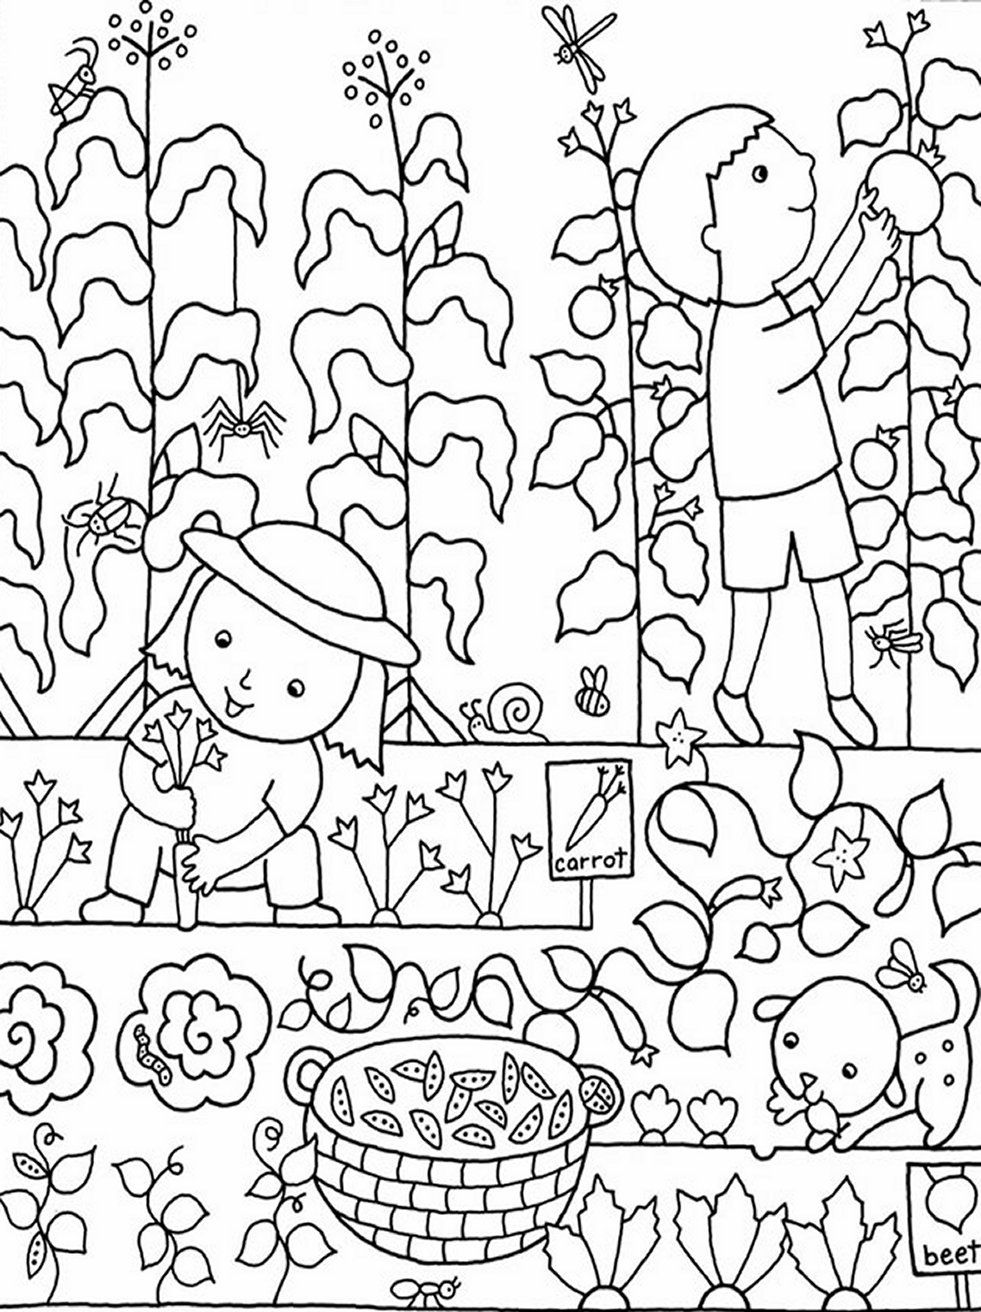 colouring pages garden kids gardening coloring pages free colouring pictures to colouring garden pages